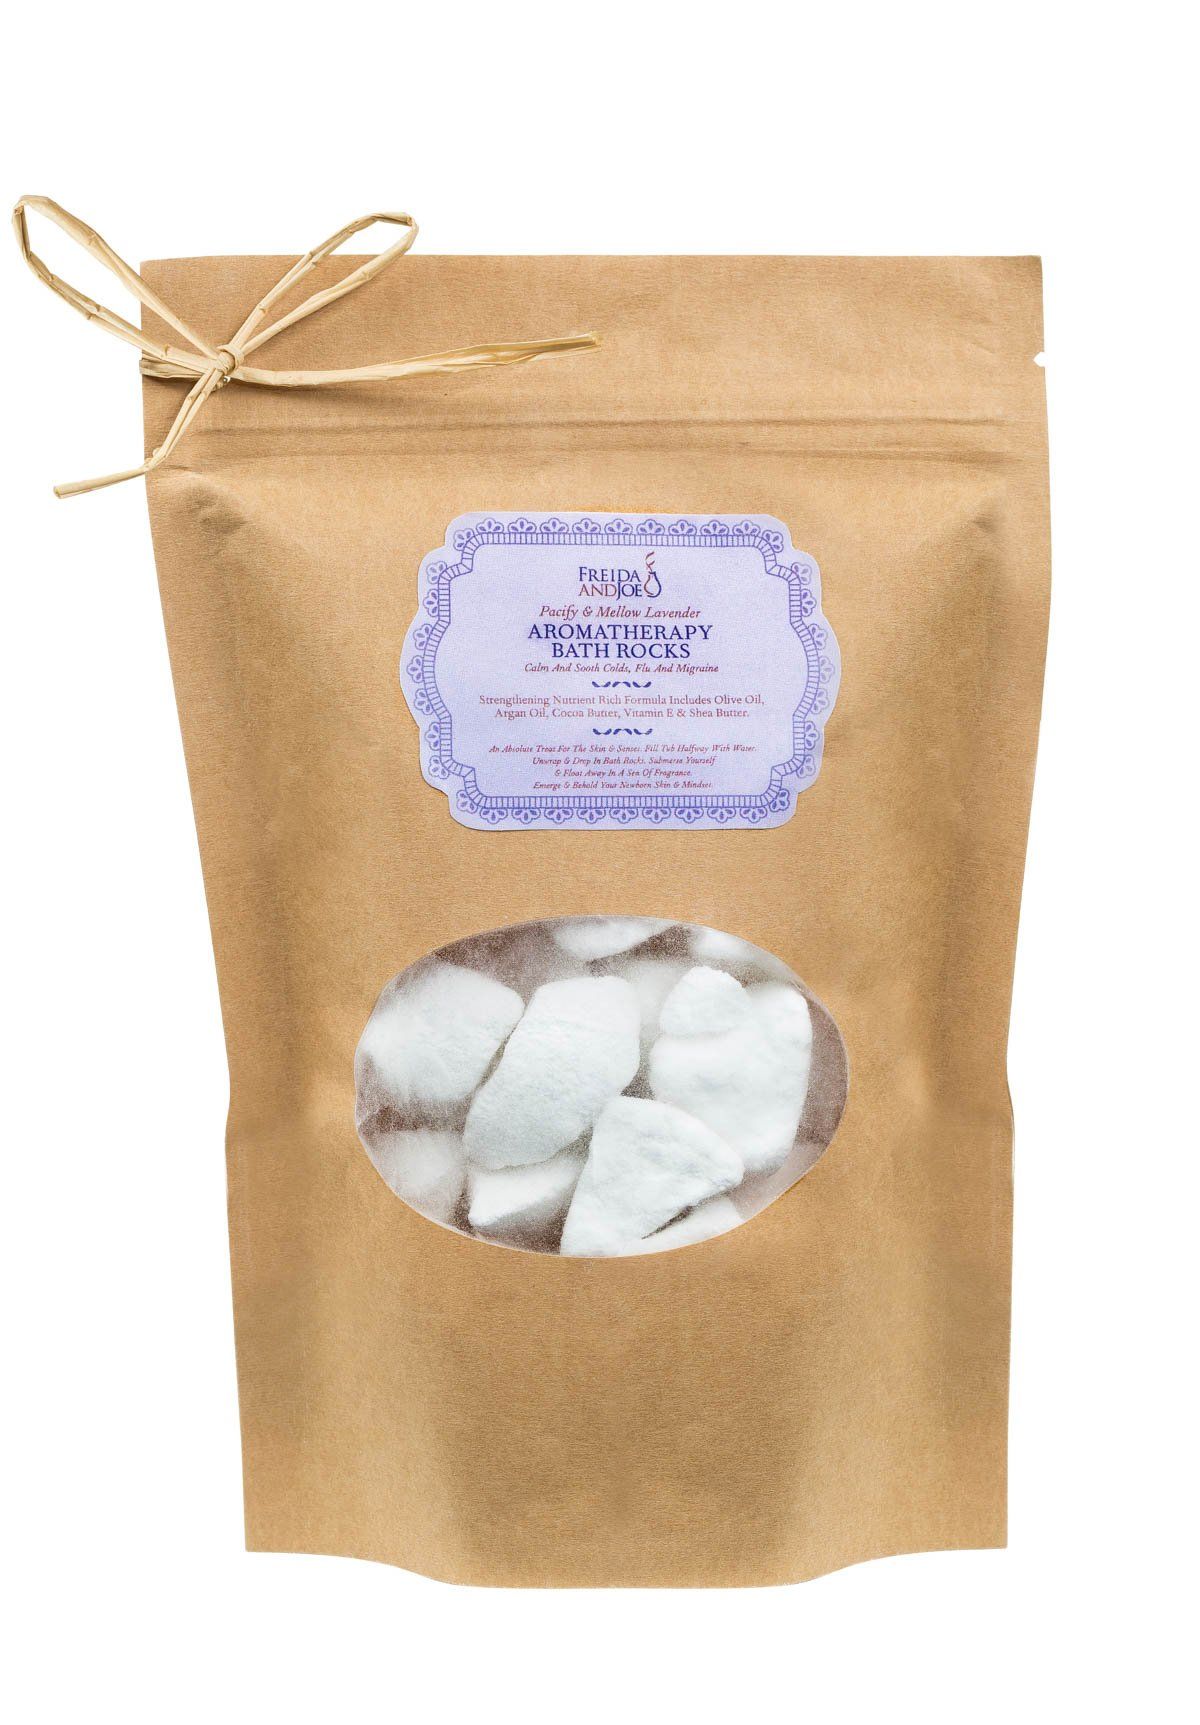 Freida and Joe Relaxing Aromatherapy Bath Rocks with Argan Oil, Olive Oil, Cocoa Butter, Shea Butter and Vitamin E, in Lavender Scent Perfect for Women, 250 Grams of Bath Bombs in a Spa Gift Bag